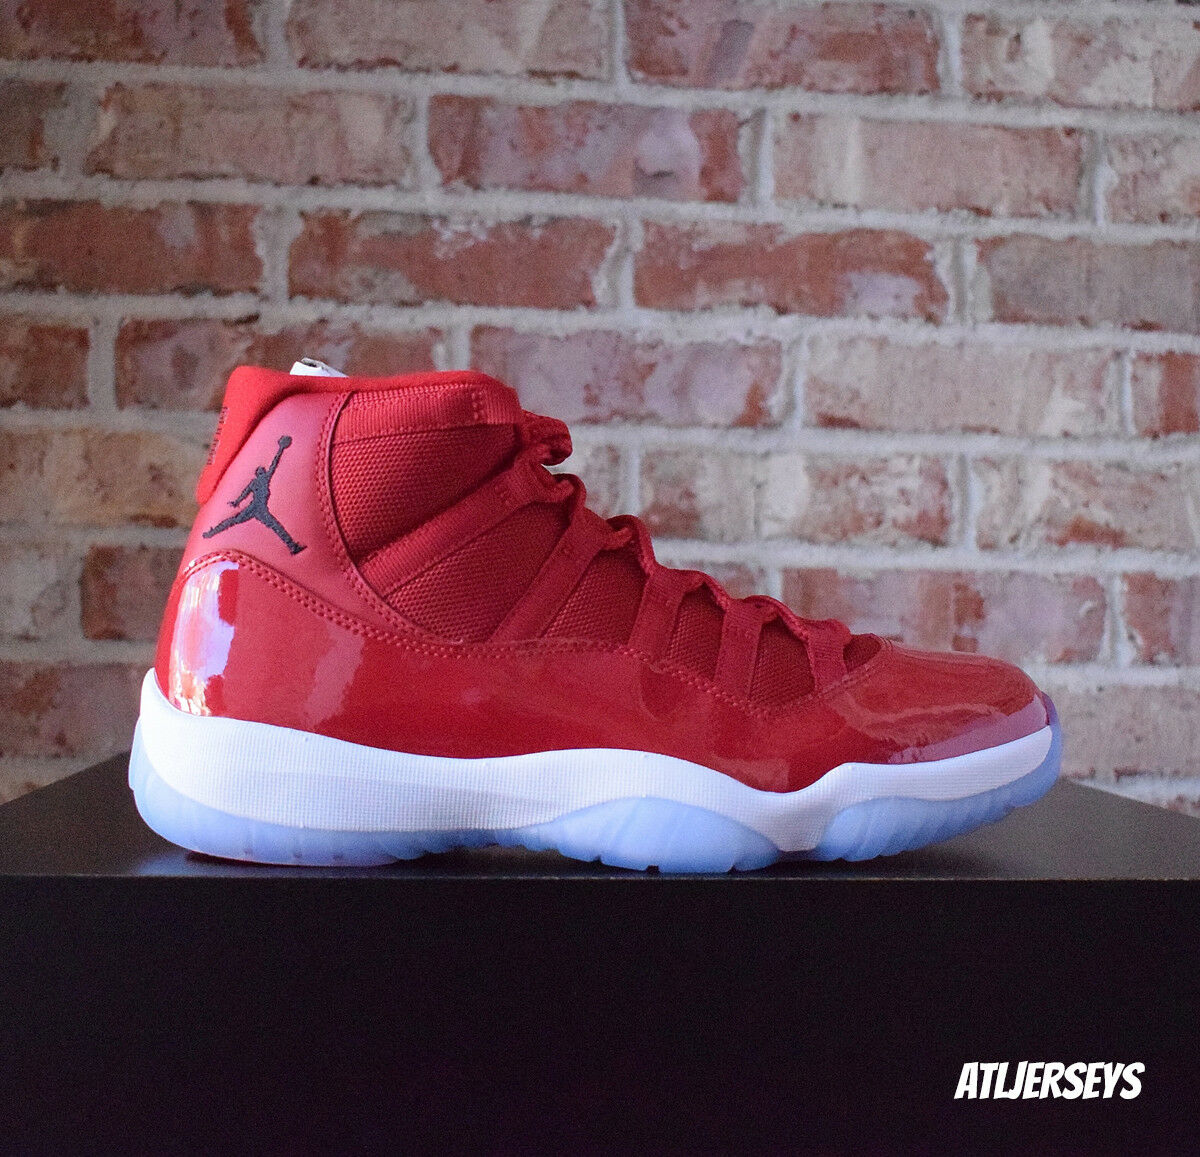 f55efbe2b09a75 2017 Nike Air Jordan 11 XI Retro Win Like 96 Gym Red 378037-623 Size 4Y-13  1 of 12Only 0 available ...